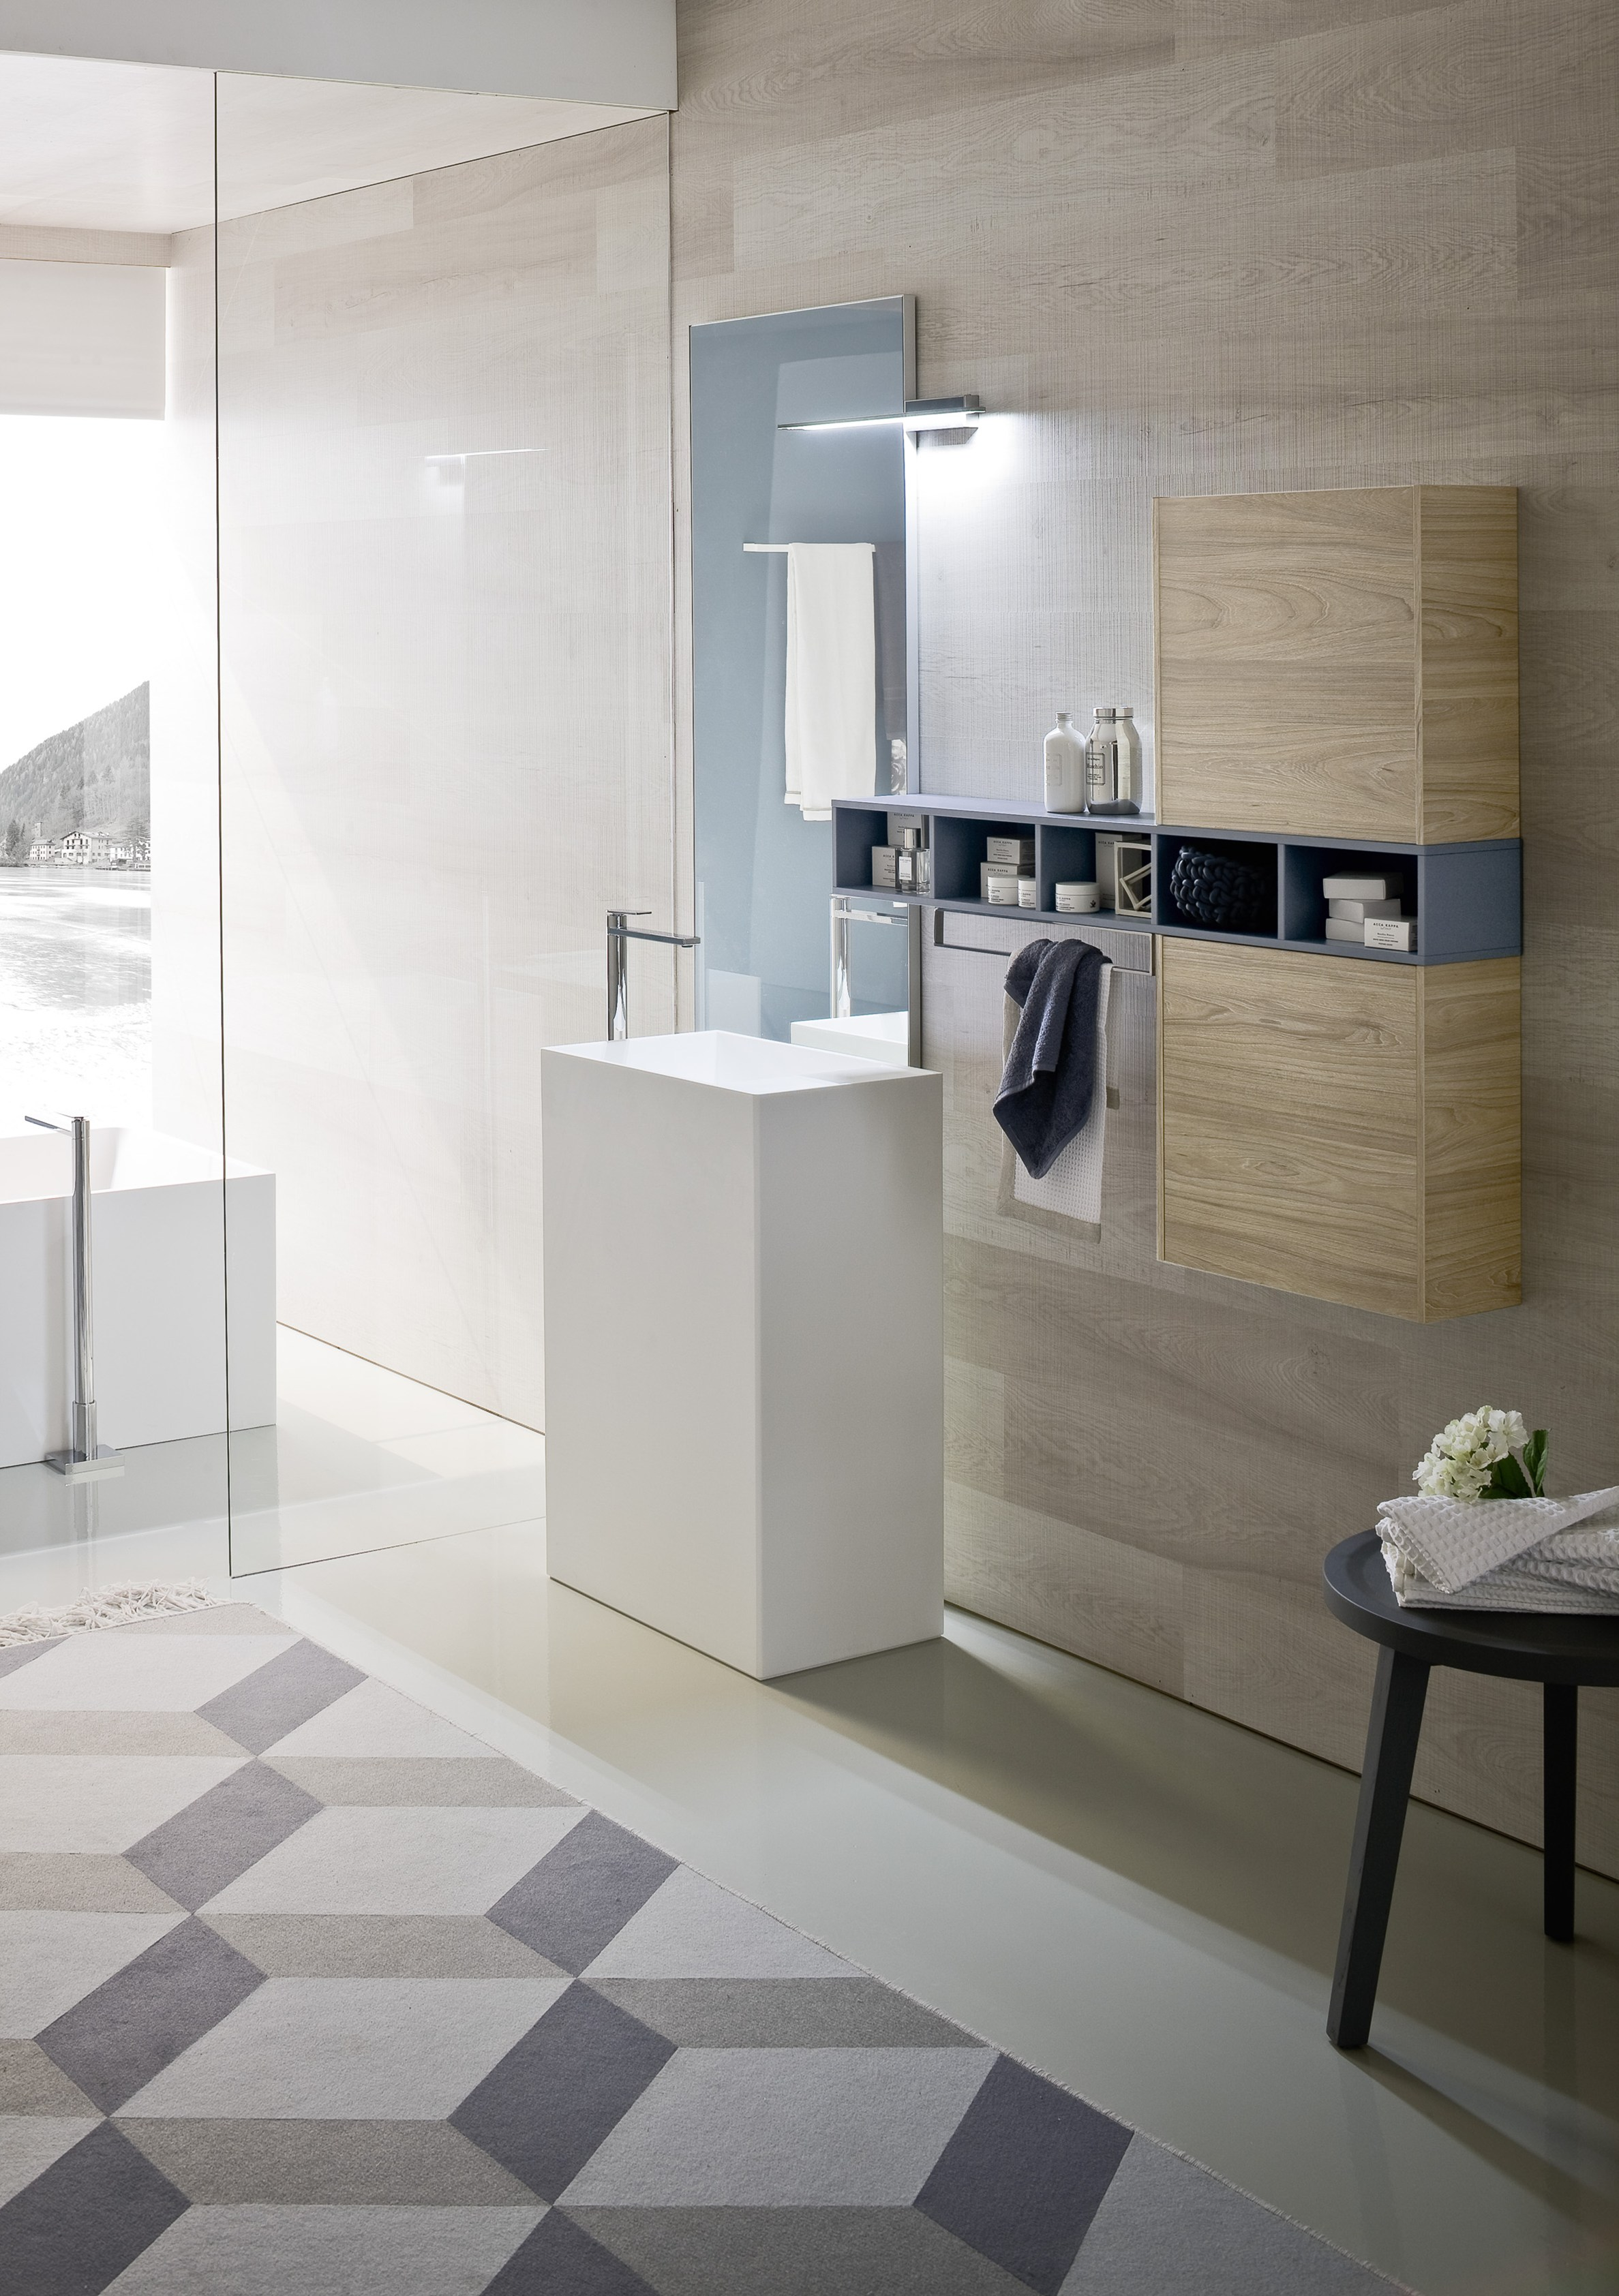 Comp n04 arredo bagno completo by ideagroup for Arredo bagno completo